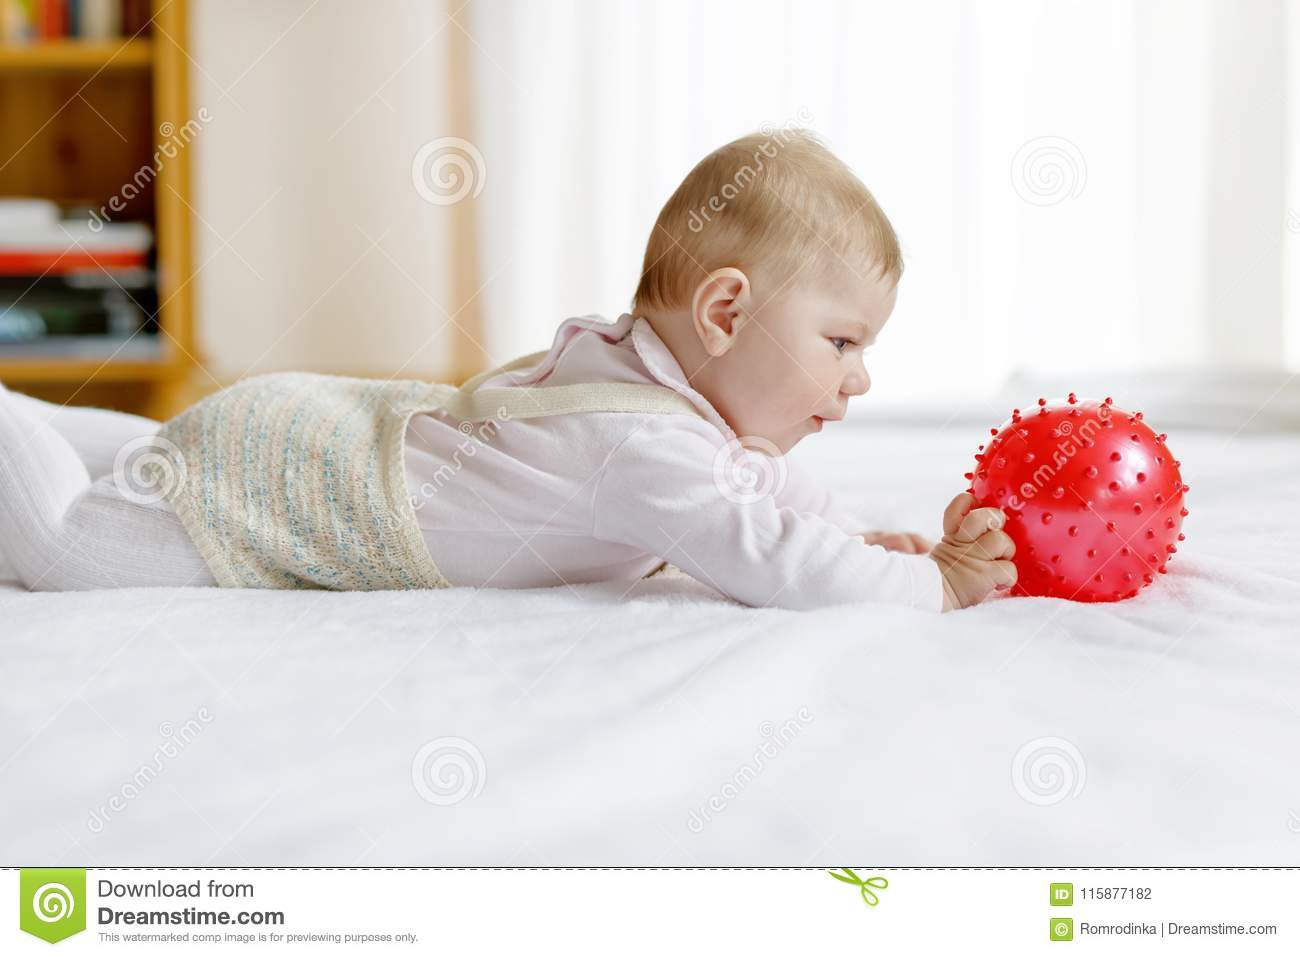 1e8beba4f3c Cute Baby Playing With Red Gum Ball